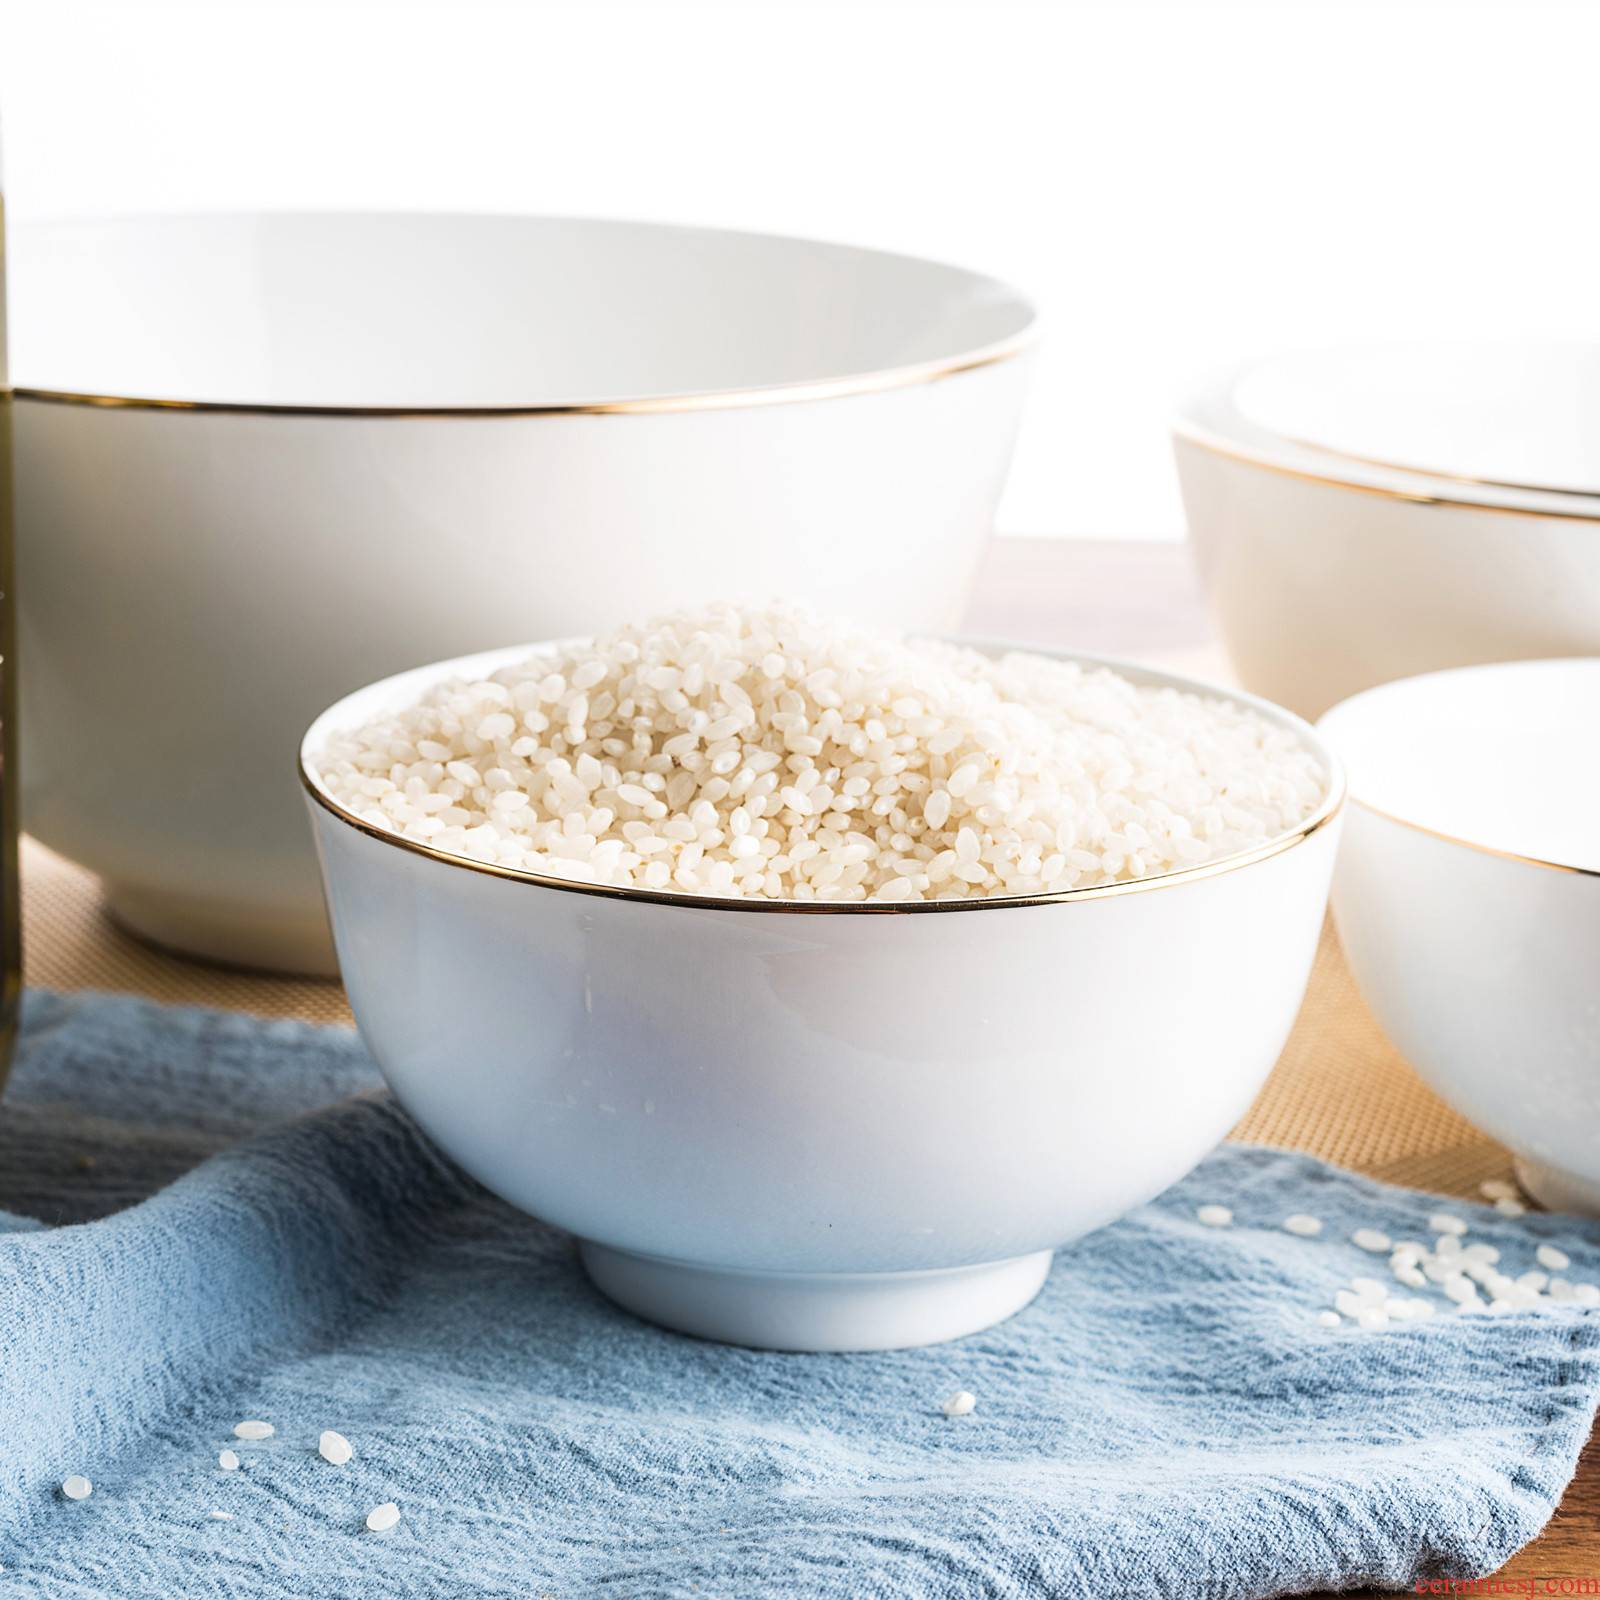 Up Phnom penh bowl of soup bowl small ceramic bowl of rice bowls with large bowl of noodles creative ipads porcelain single bowl to eat bread and butter